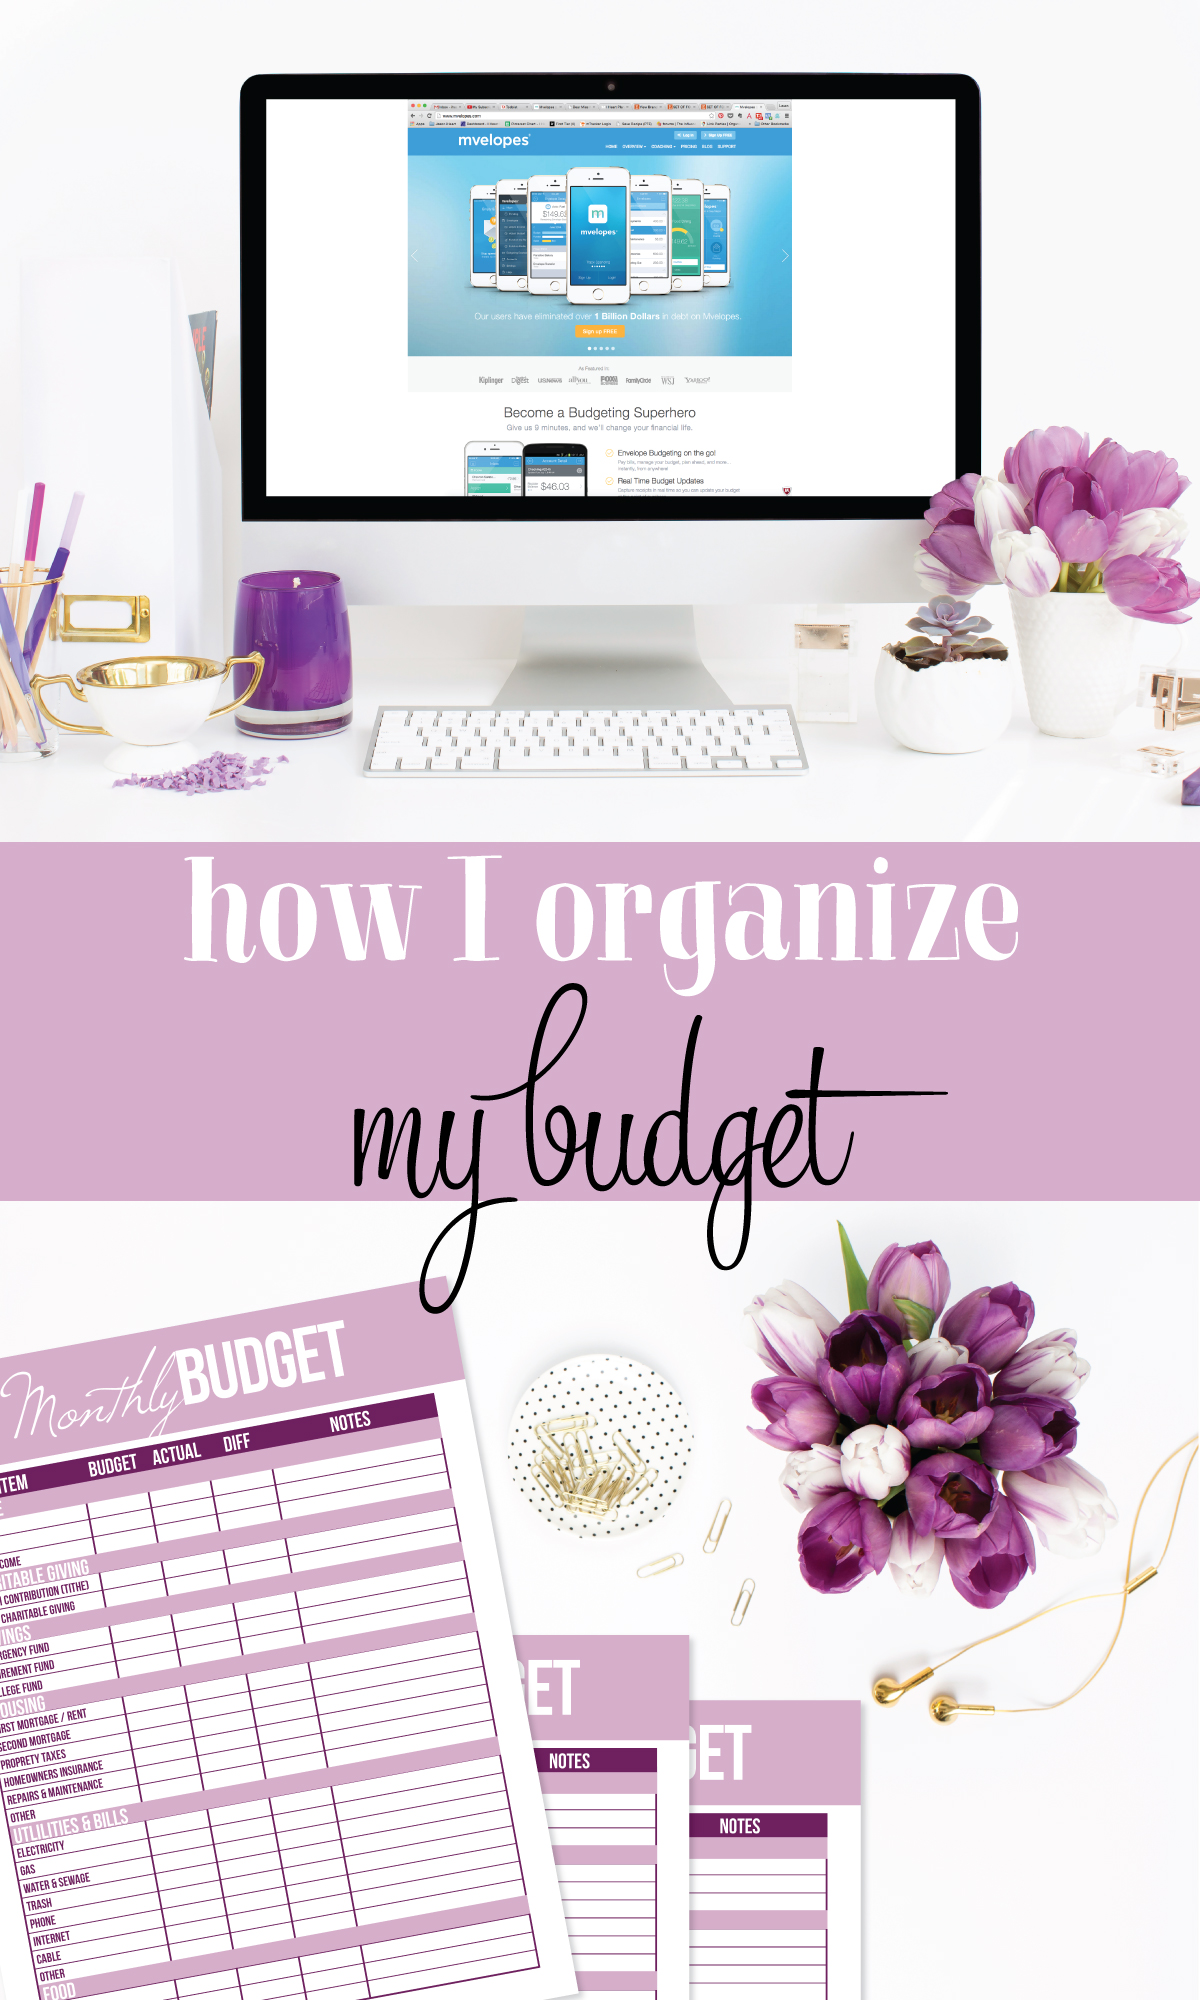 Indulging How I Organize My Budget My Digital Budgeting How I Organize My Budget I Heart Planners How To Organize Digital Photos On Computer How To Organize Non Digital Photos photos How To Organize Digital Photos